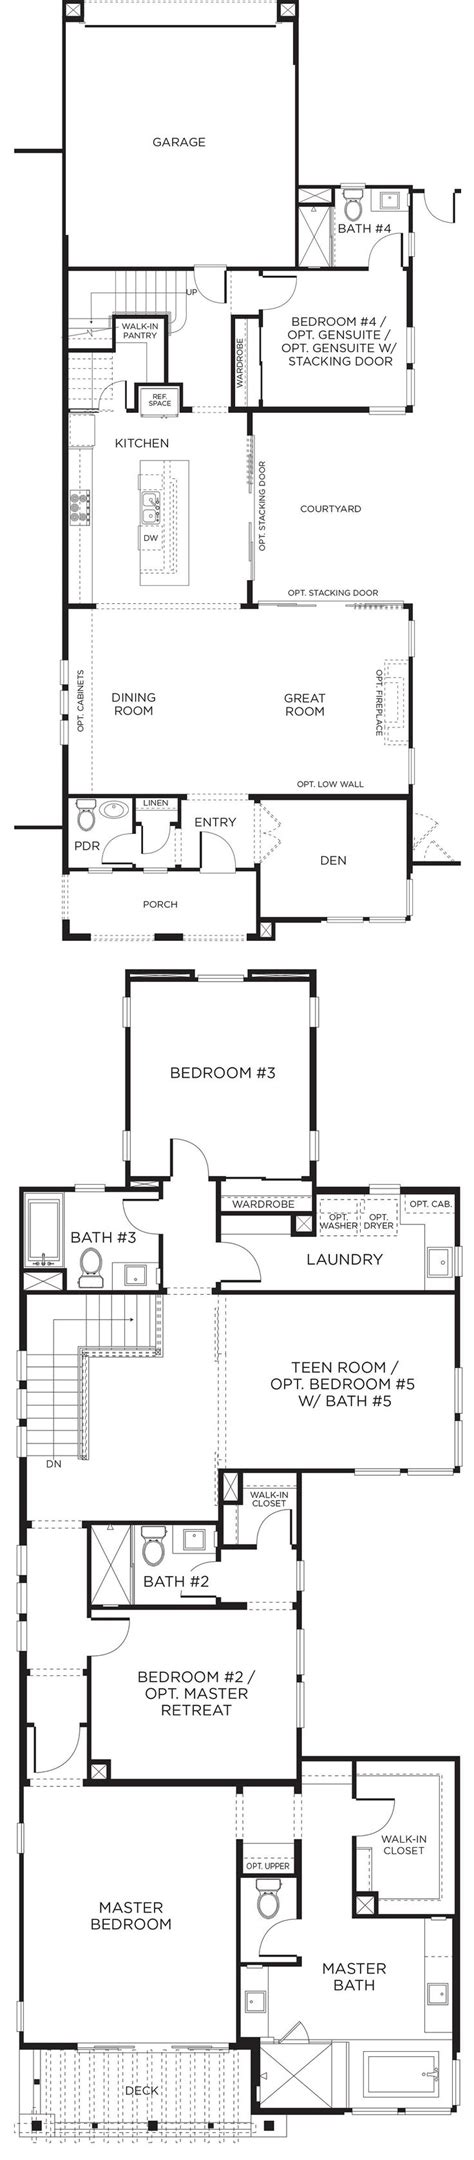 Pardee Homes Floor Plans | 17 best images about san diego pardee homes on pinterest